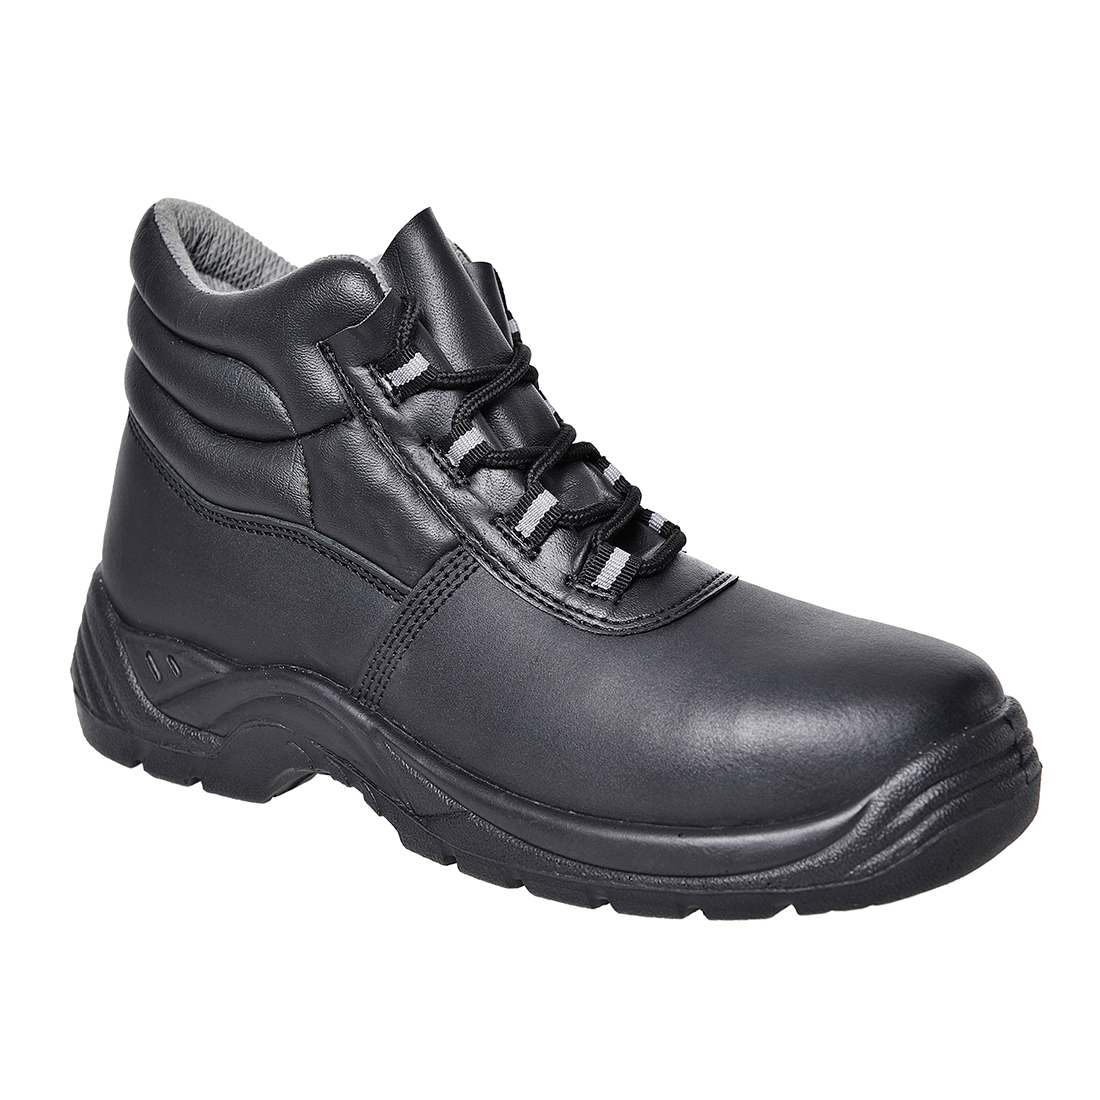 Compositelite Safety Boot, Black      Size 4 R/Fit